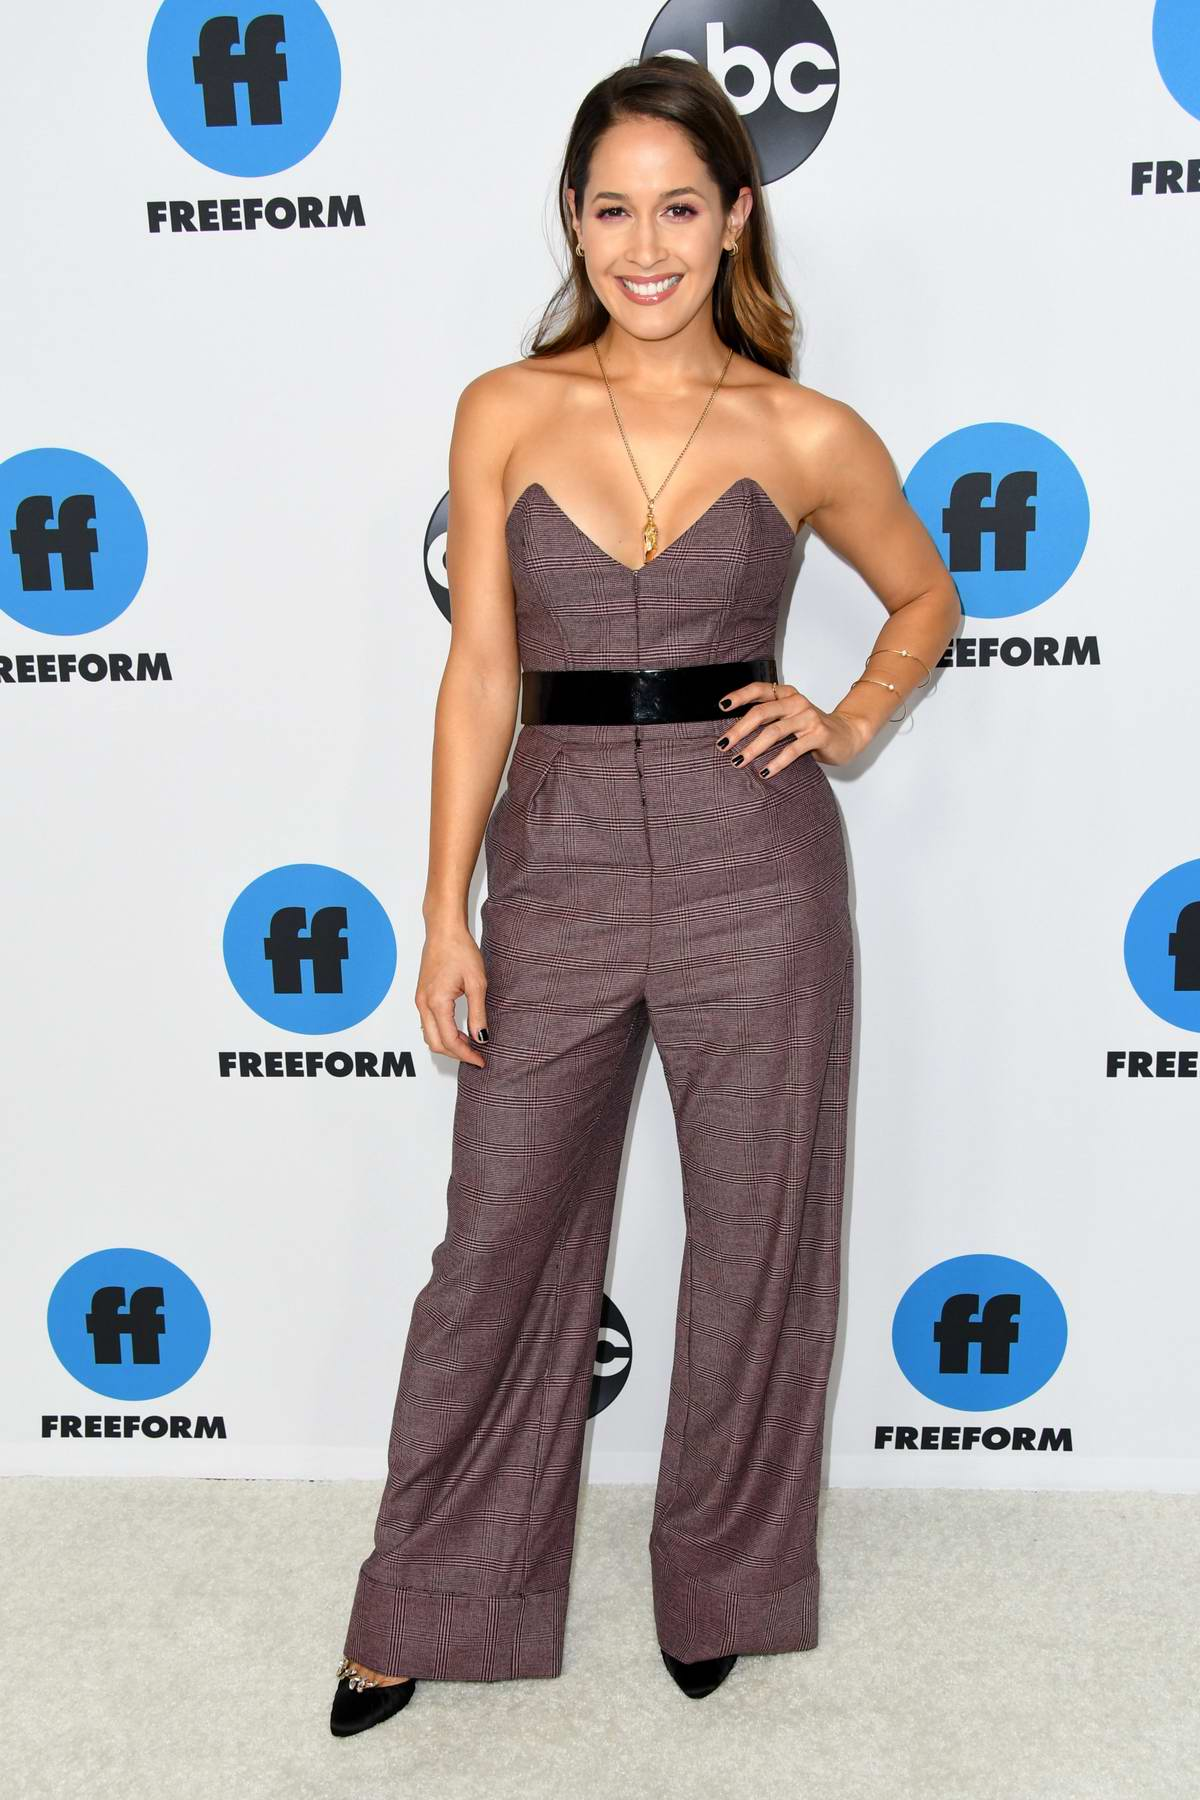 Jaina Lee Ortiz attends the Freeform's TCA Winter Press Tour in Los Angeles